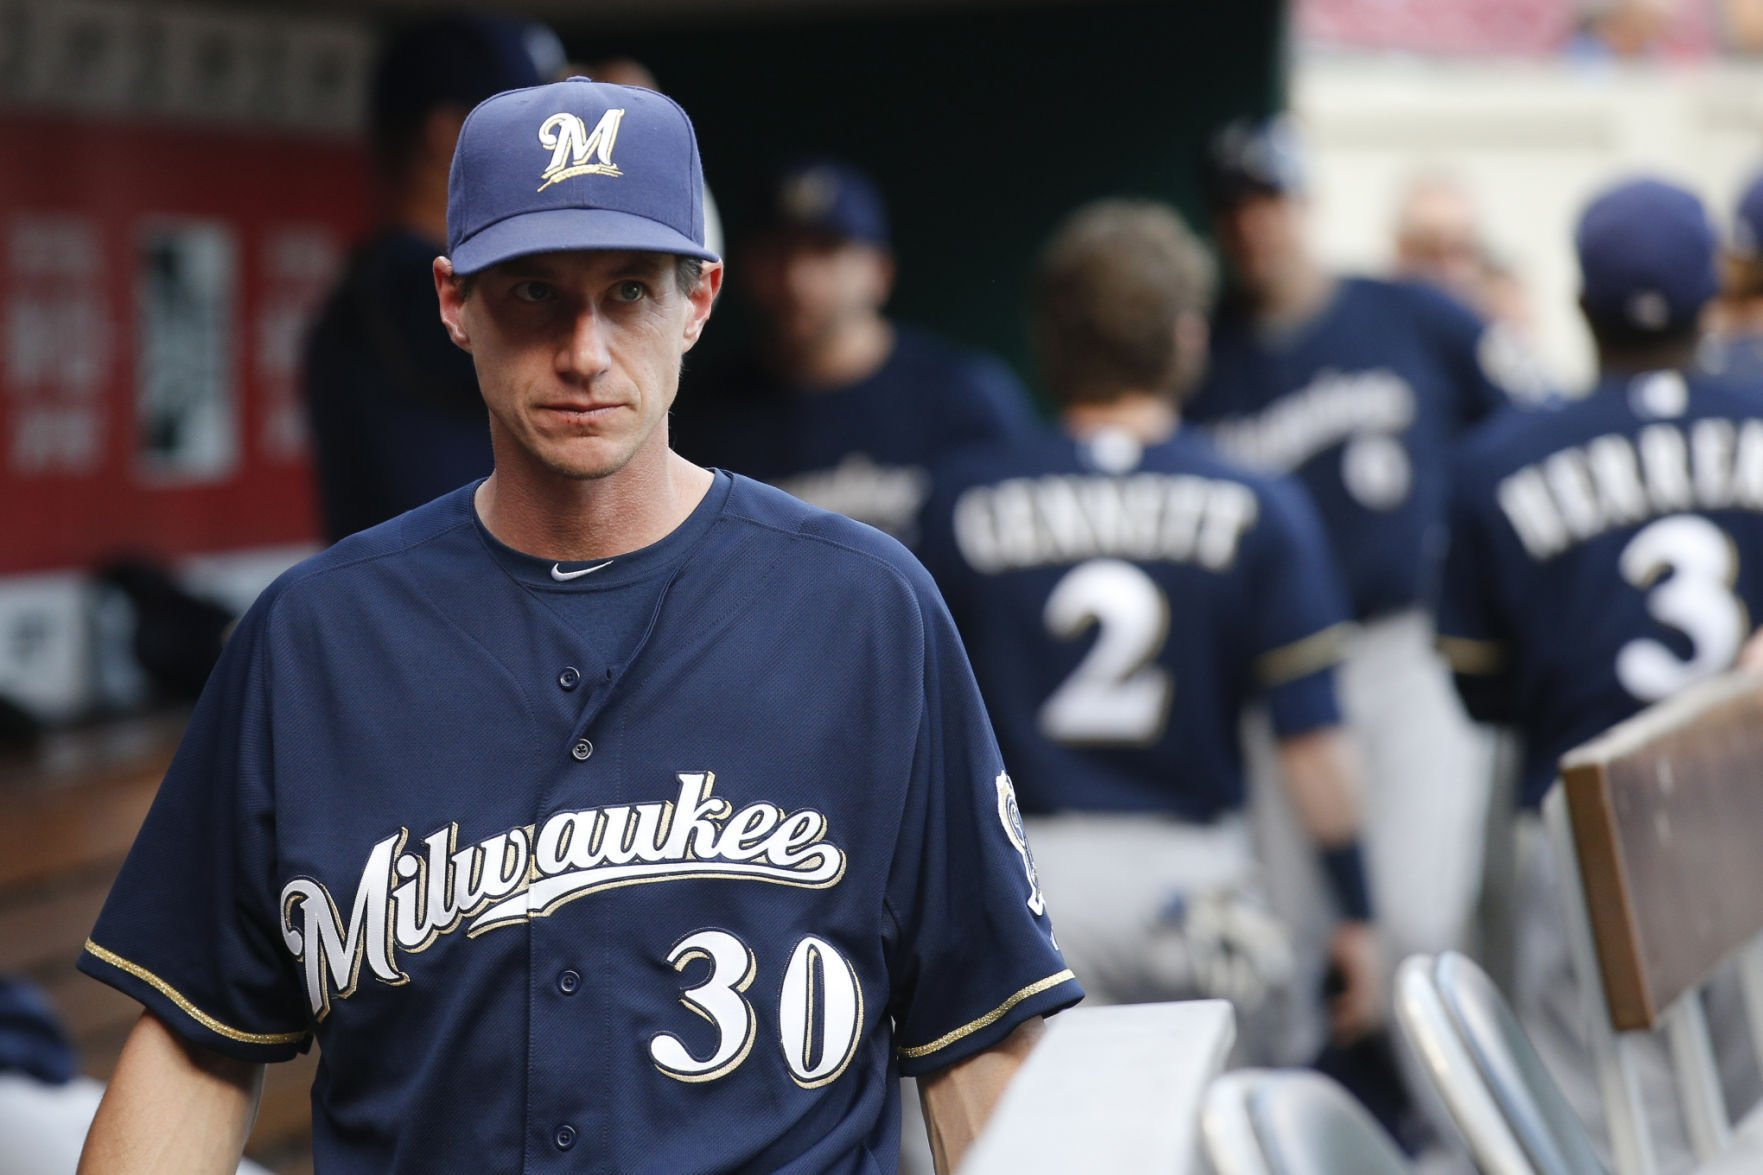 Craig Counsell Signs 3 Year Contract Extension